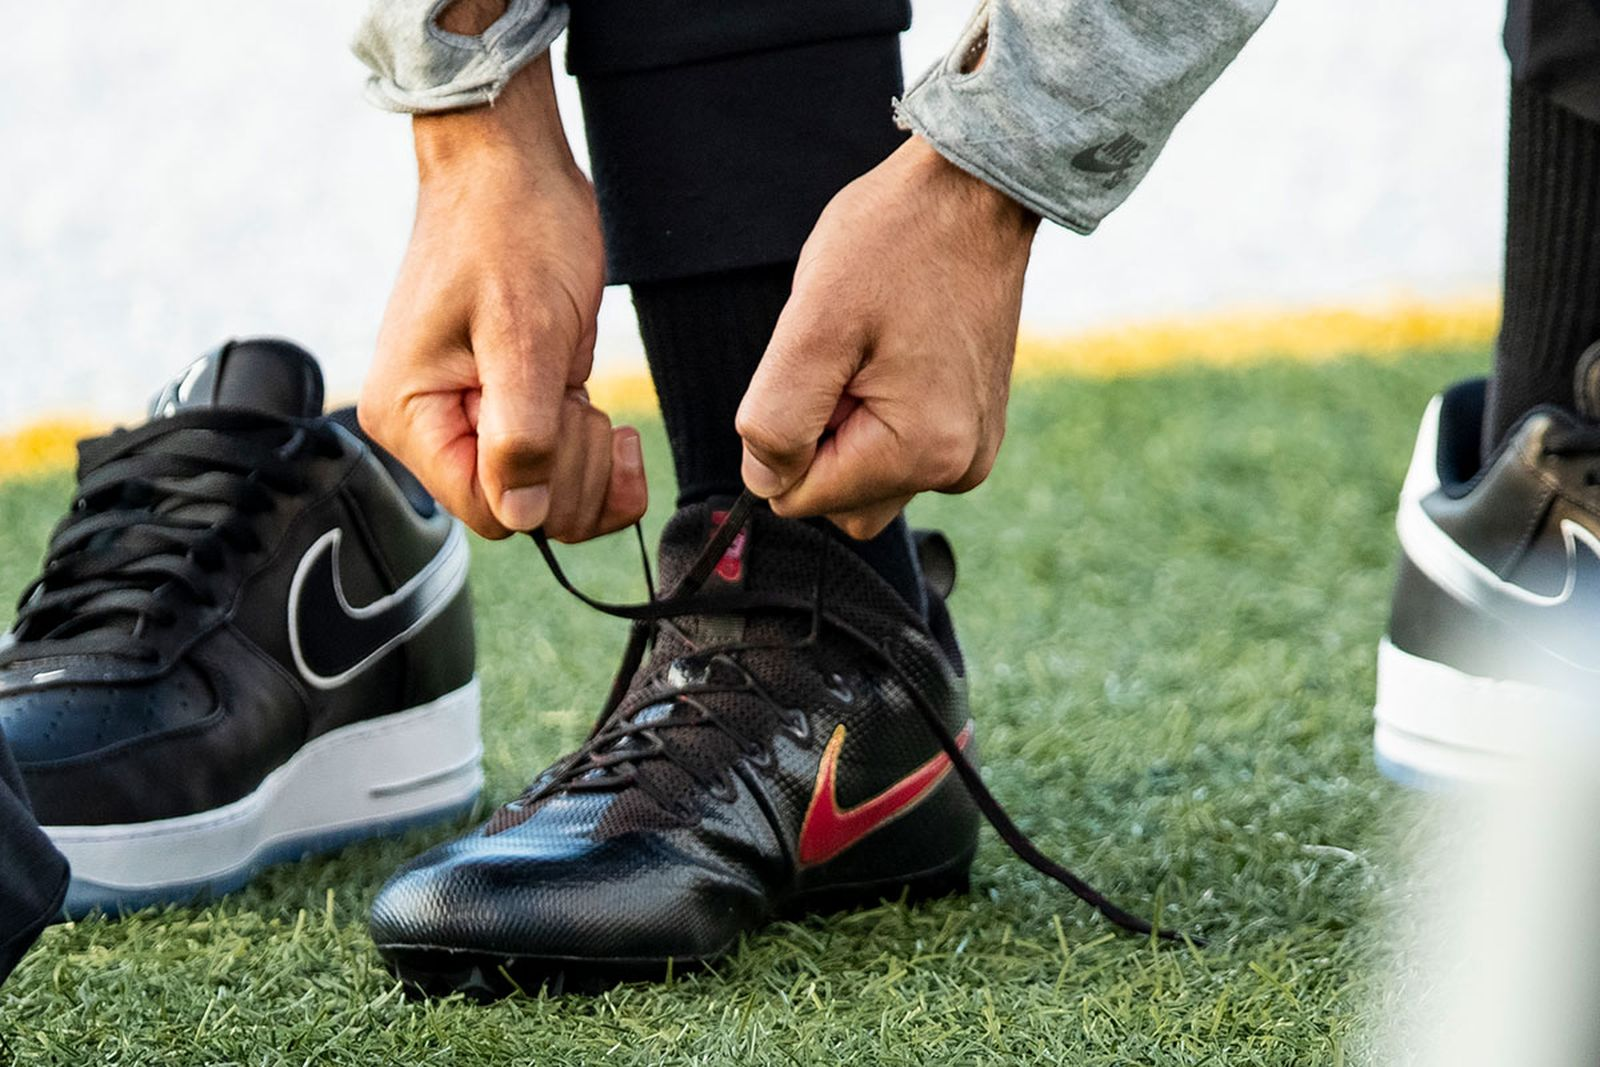 Colin Kaepernick laces cleats next to rummer Nike AF1 collab